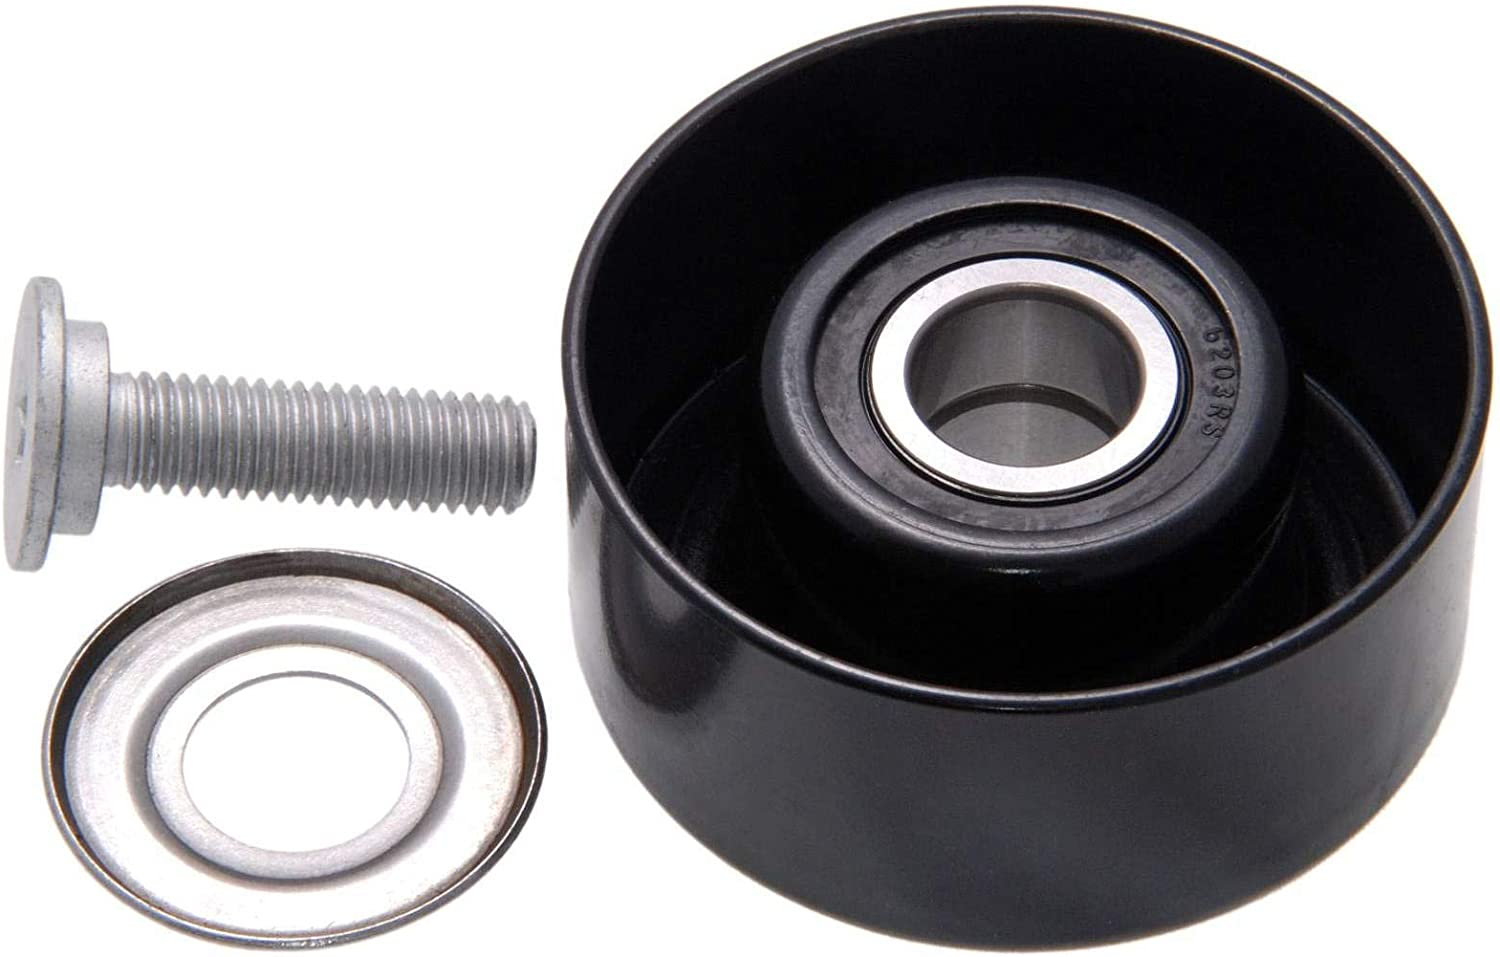 Max 55% OFF Sale special price Pulley Idler Kit Febest 0187-2AZFE Oem 16620-28090